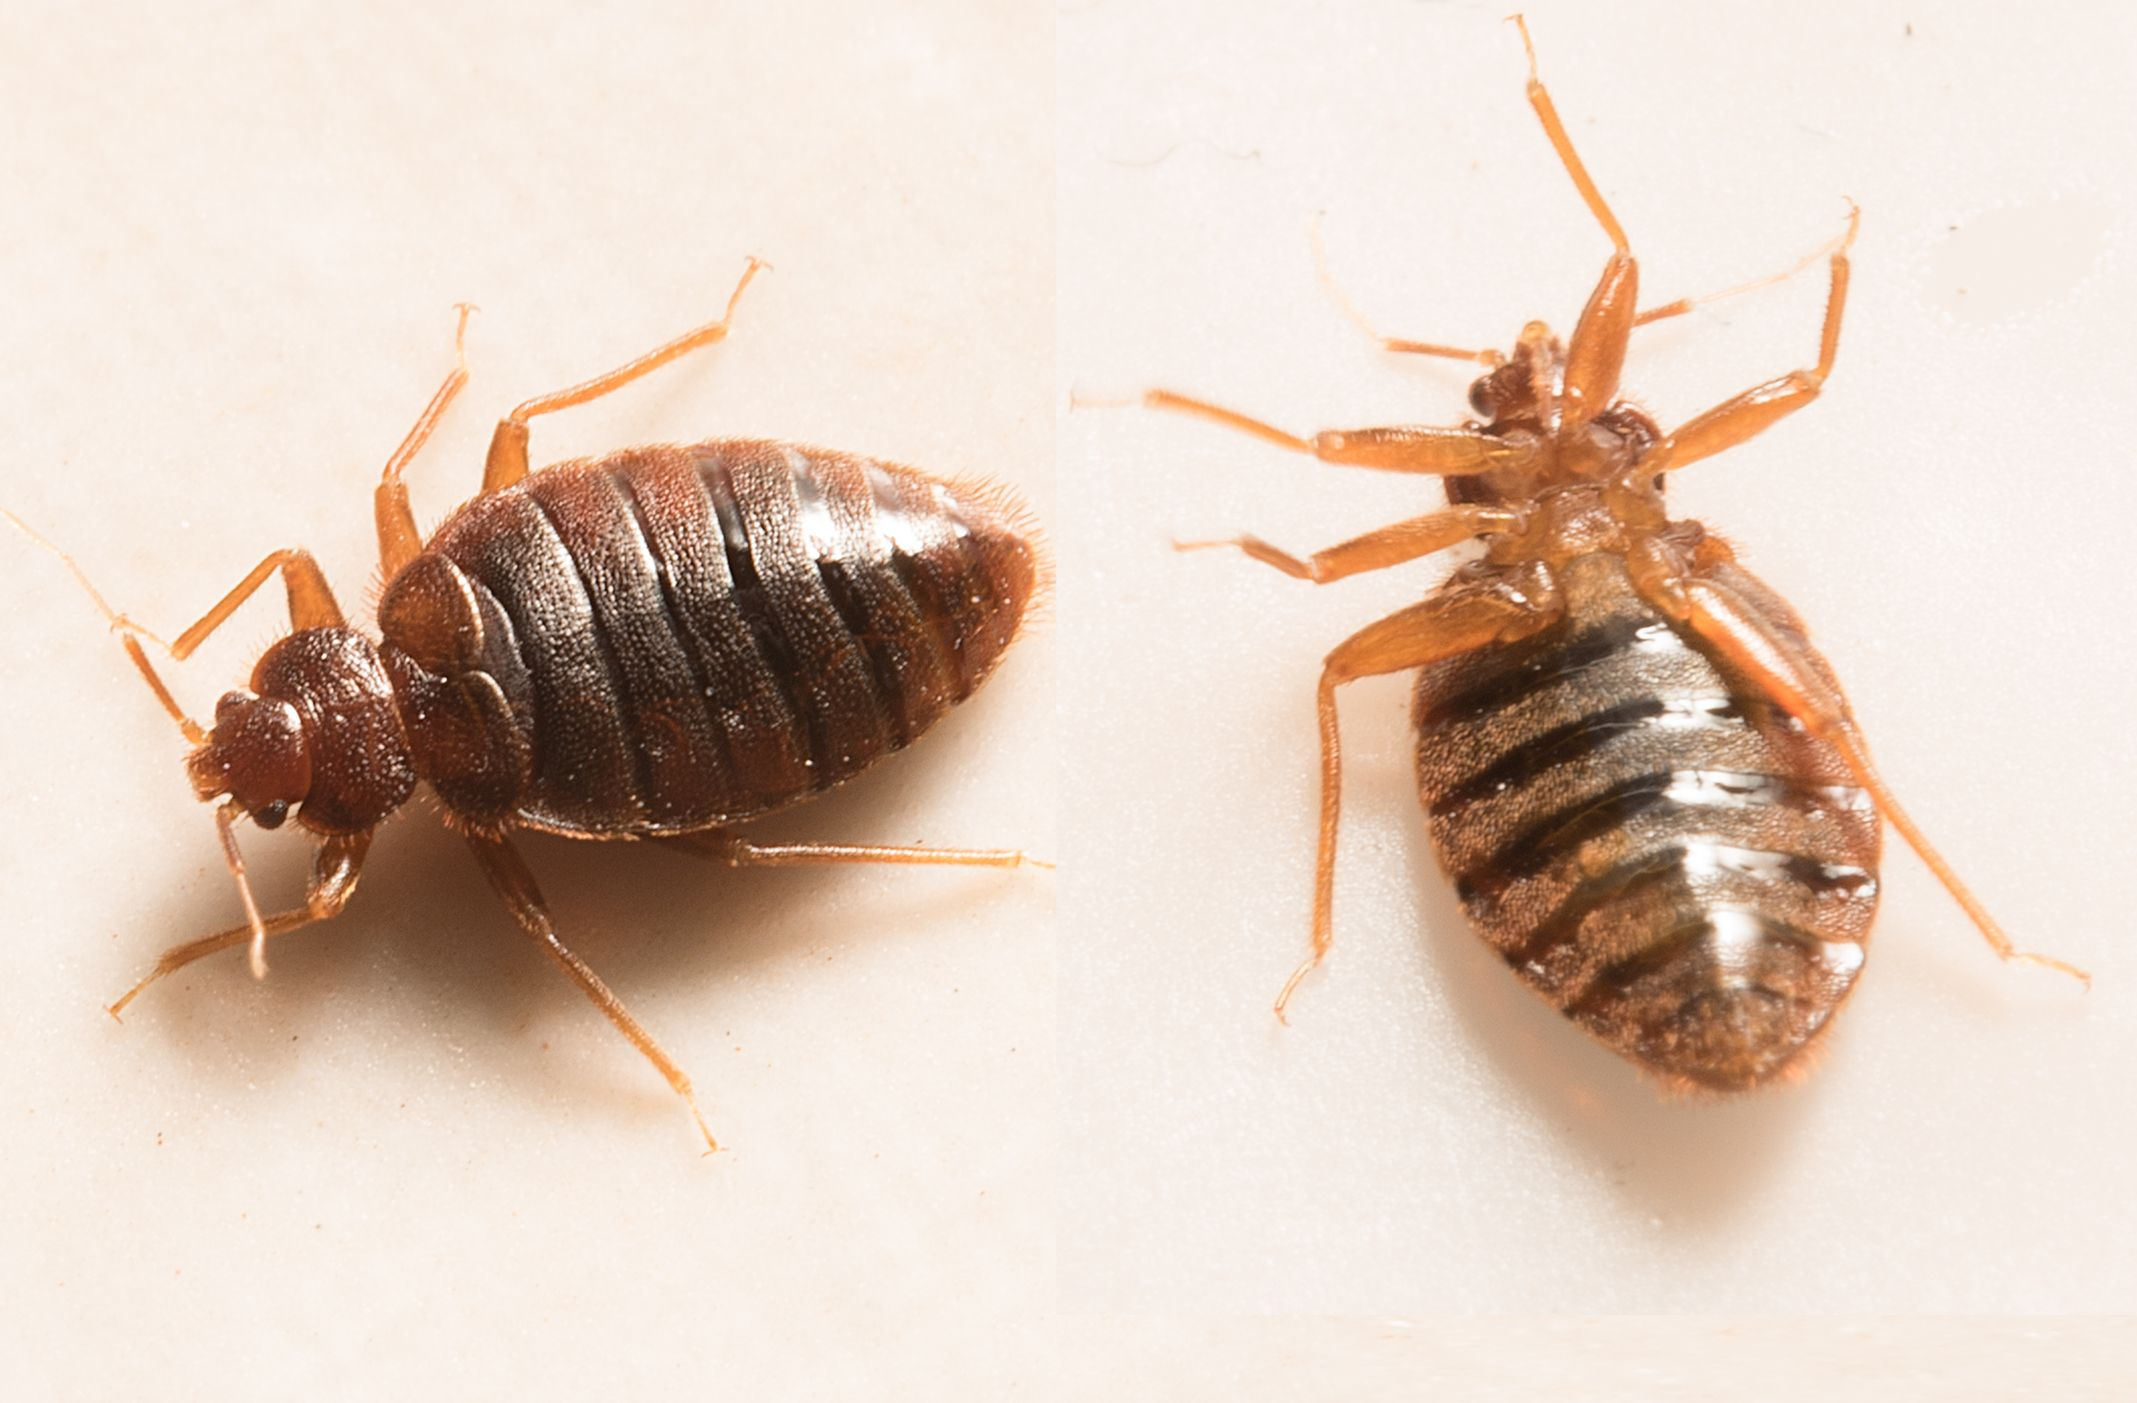 Scared of Bedbugs? You Need to Avoid These 15 Cities